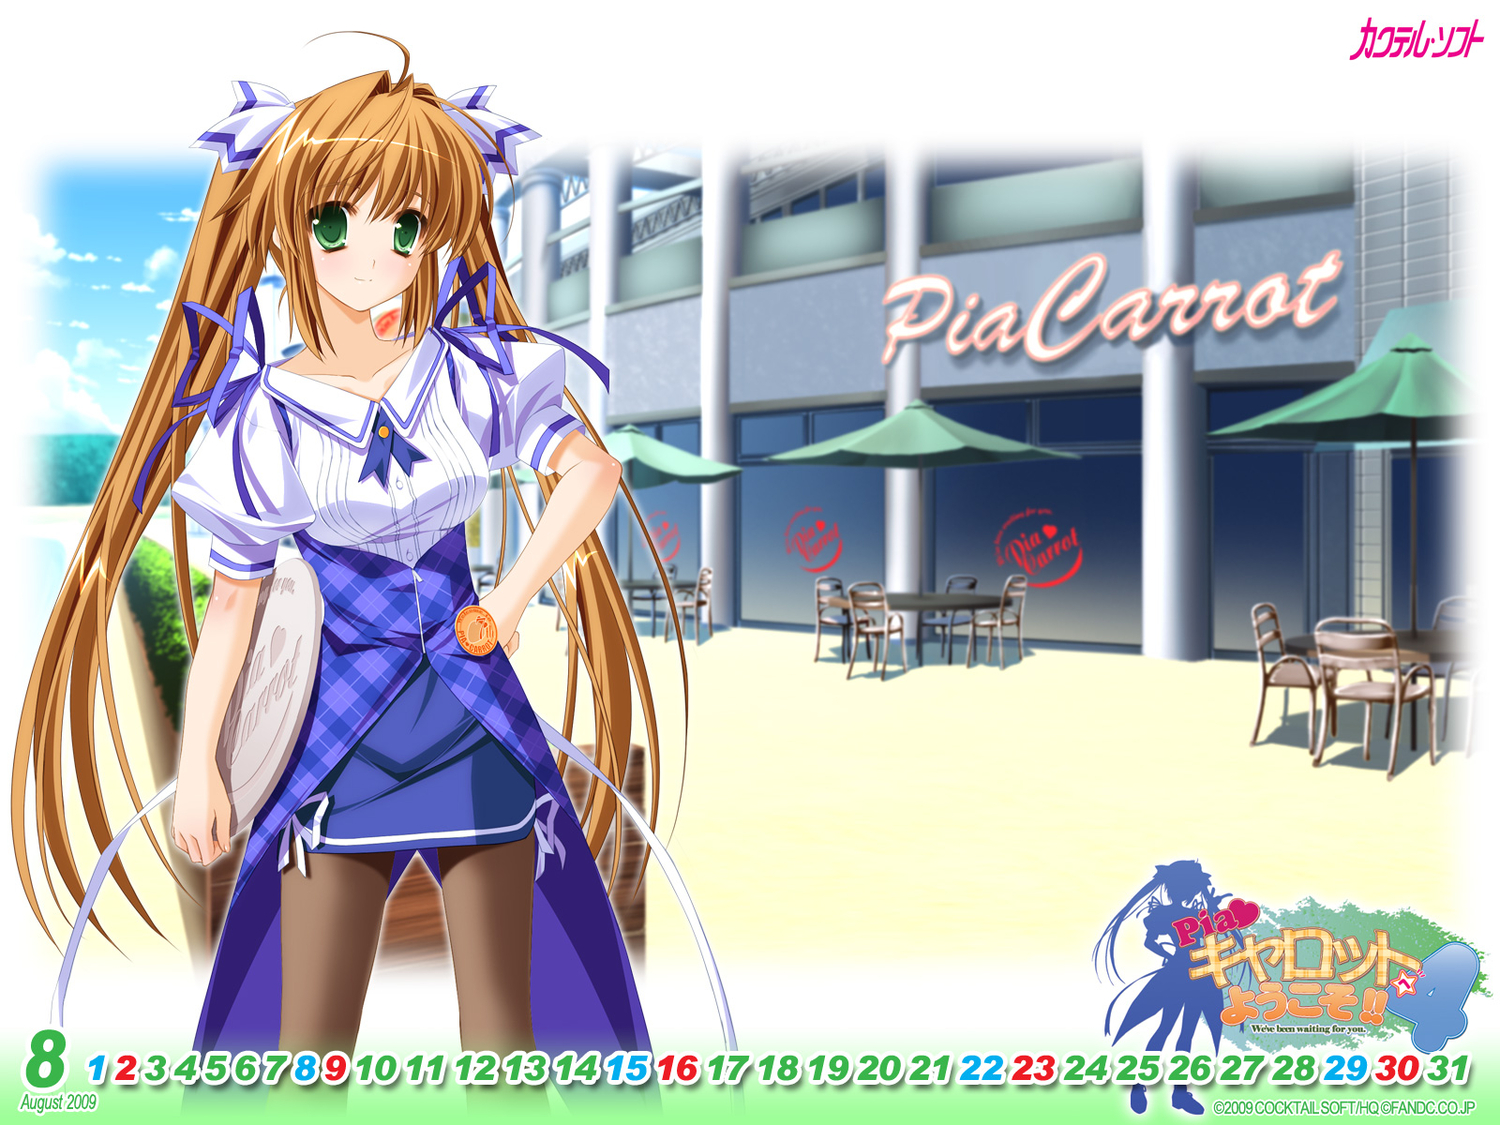 ariko_youichi brown_hair calendar green_eyes long_hair pantyhose pia_carrot pia_carrot_4 takigawa_yuna twintails waitress